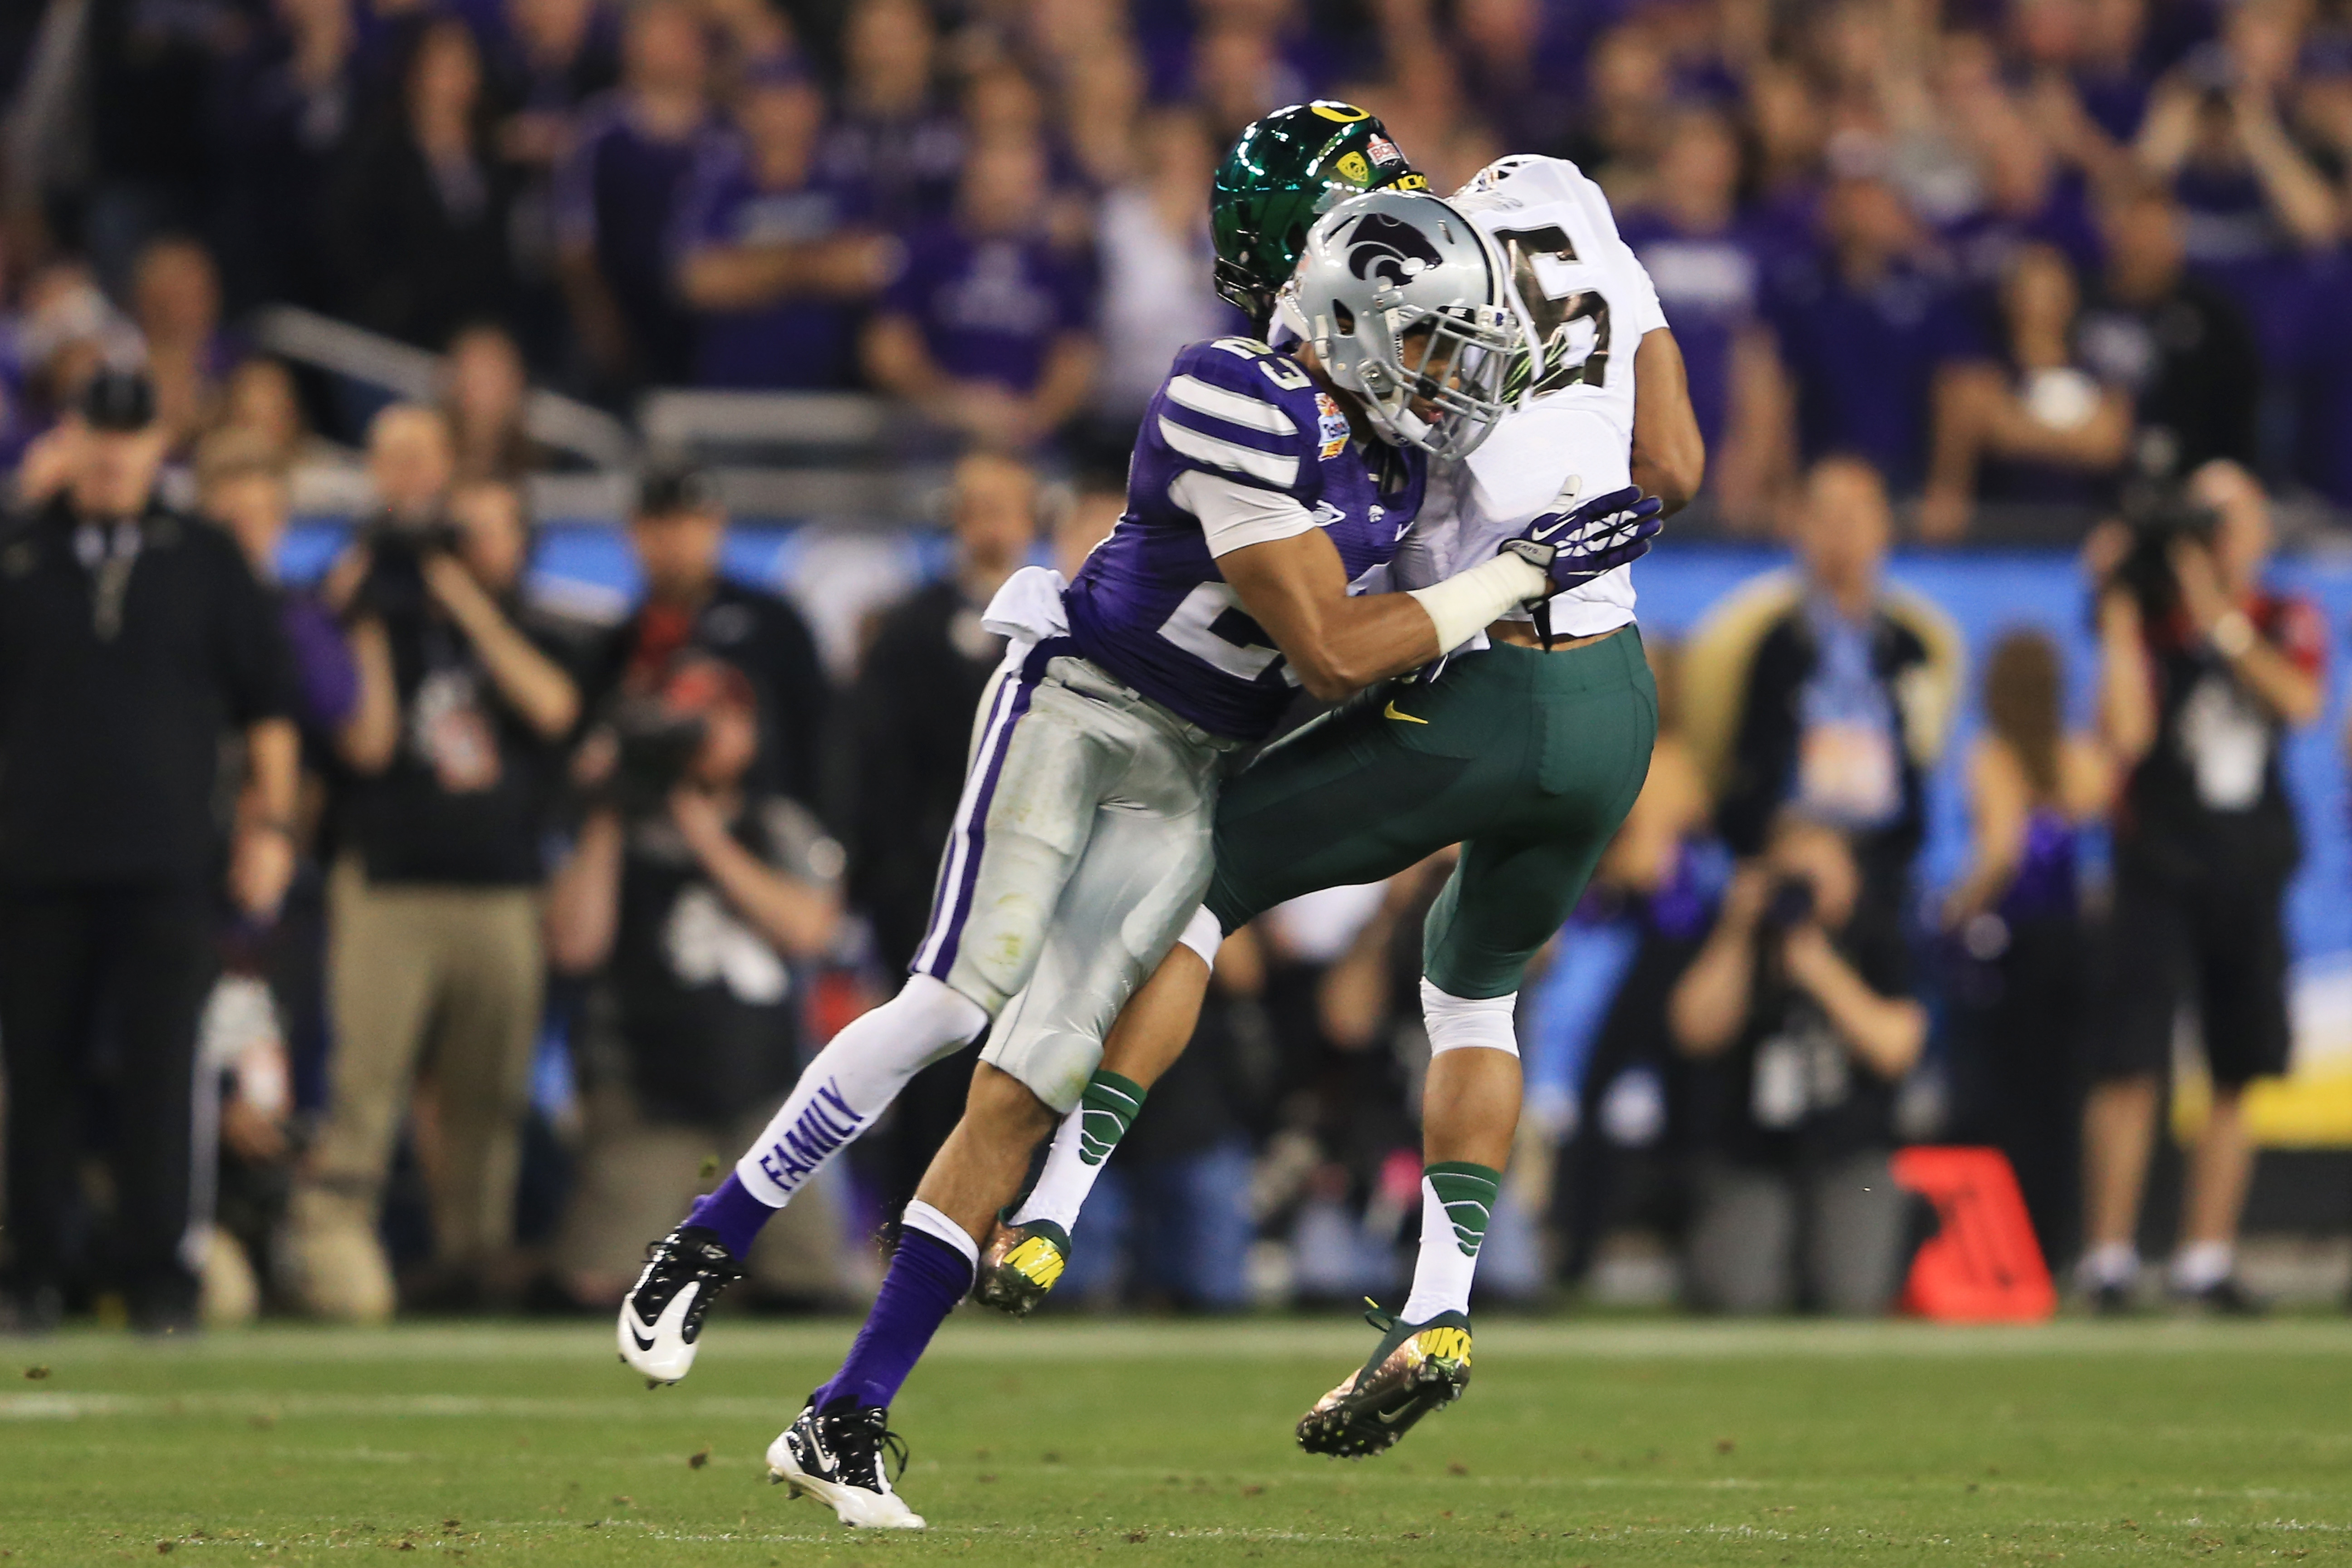 Now that he has converted to safety, Denzel Goolsby is primed to follow in the footsteps of his cousin, Jarard Milo, who started in 2012 for the Big 12 Championship team.